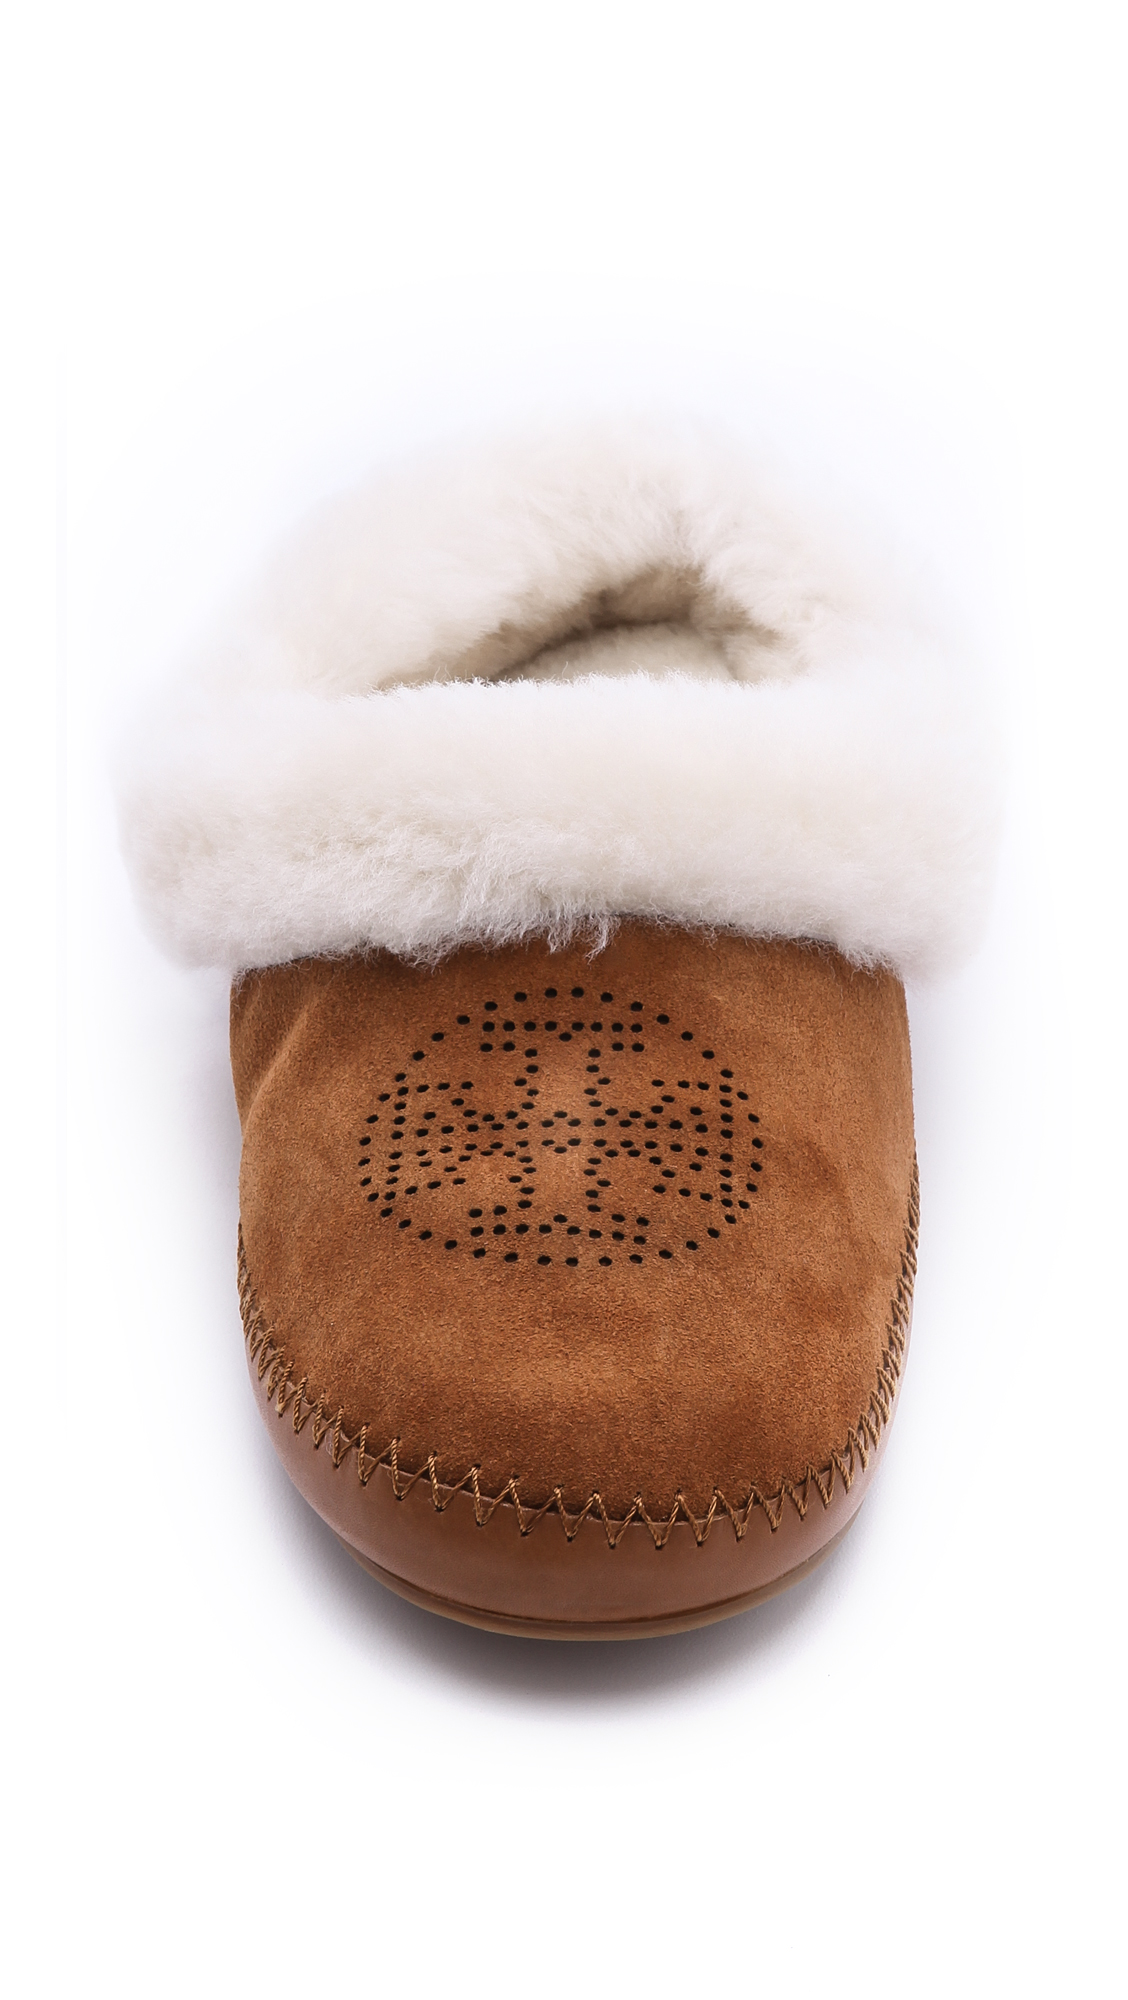 0616a598874 Tory Burch Coley Suede Shearling Lined Slippers